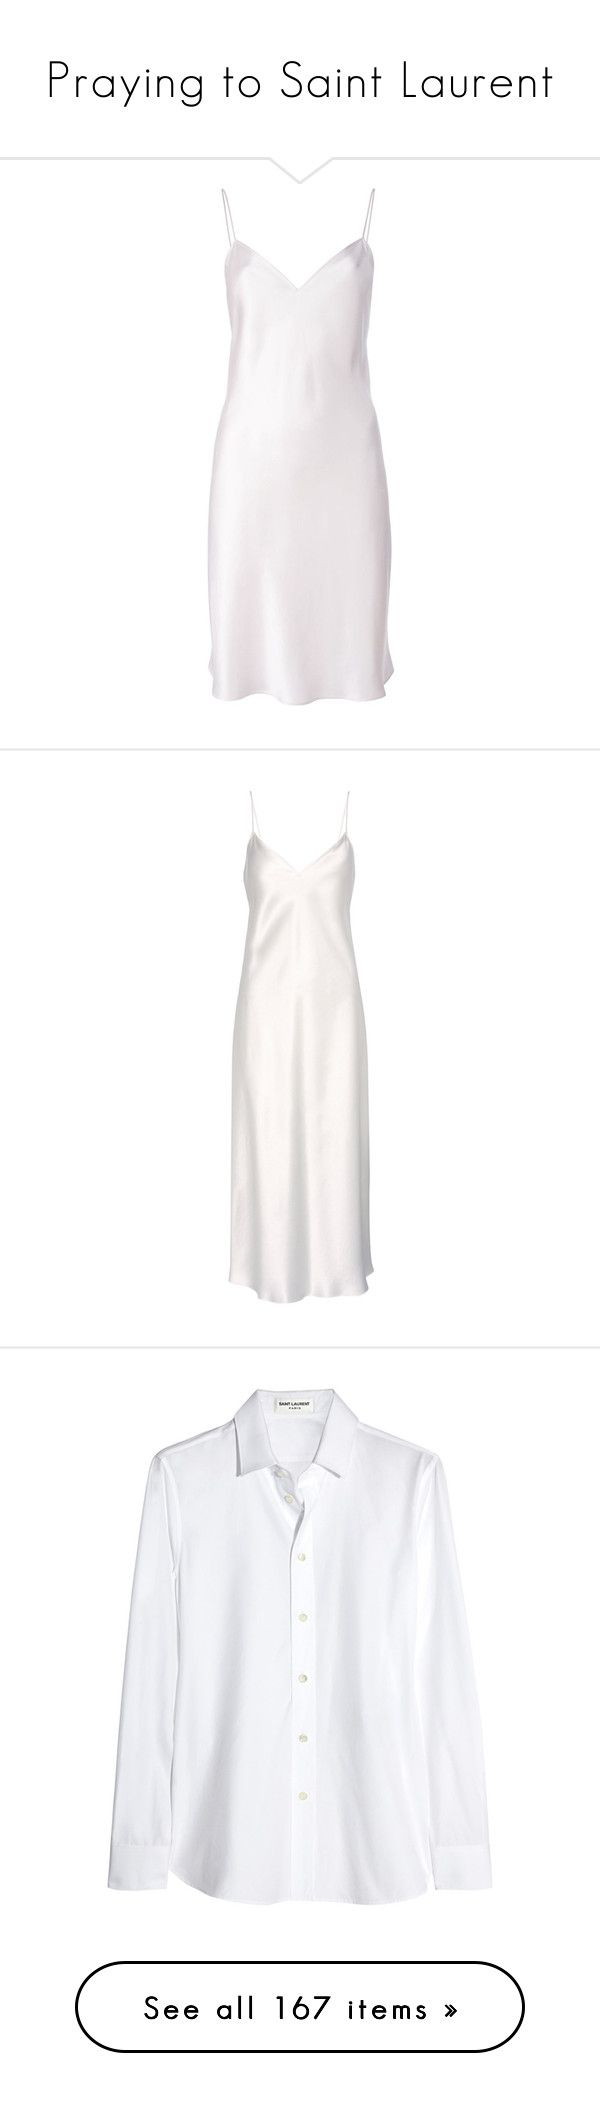 """""""Praying to Saint Laurent"""" by crasher-caroline ❤ liked on Polyvore featuring dresses, short dresses, vestidos, short white dresses, white cami dress, white ruffle dress, loose dresses, short loose dresses, cocktail dress and white"""